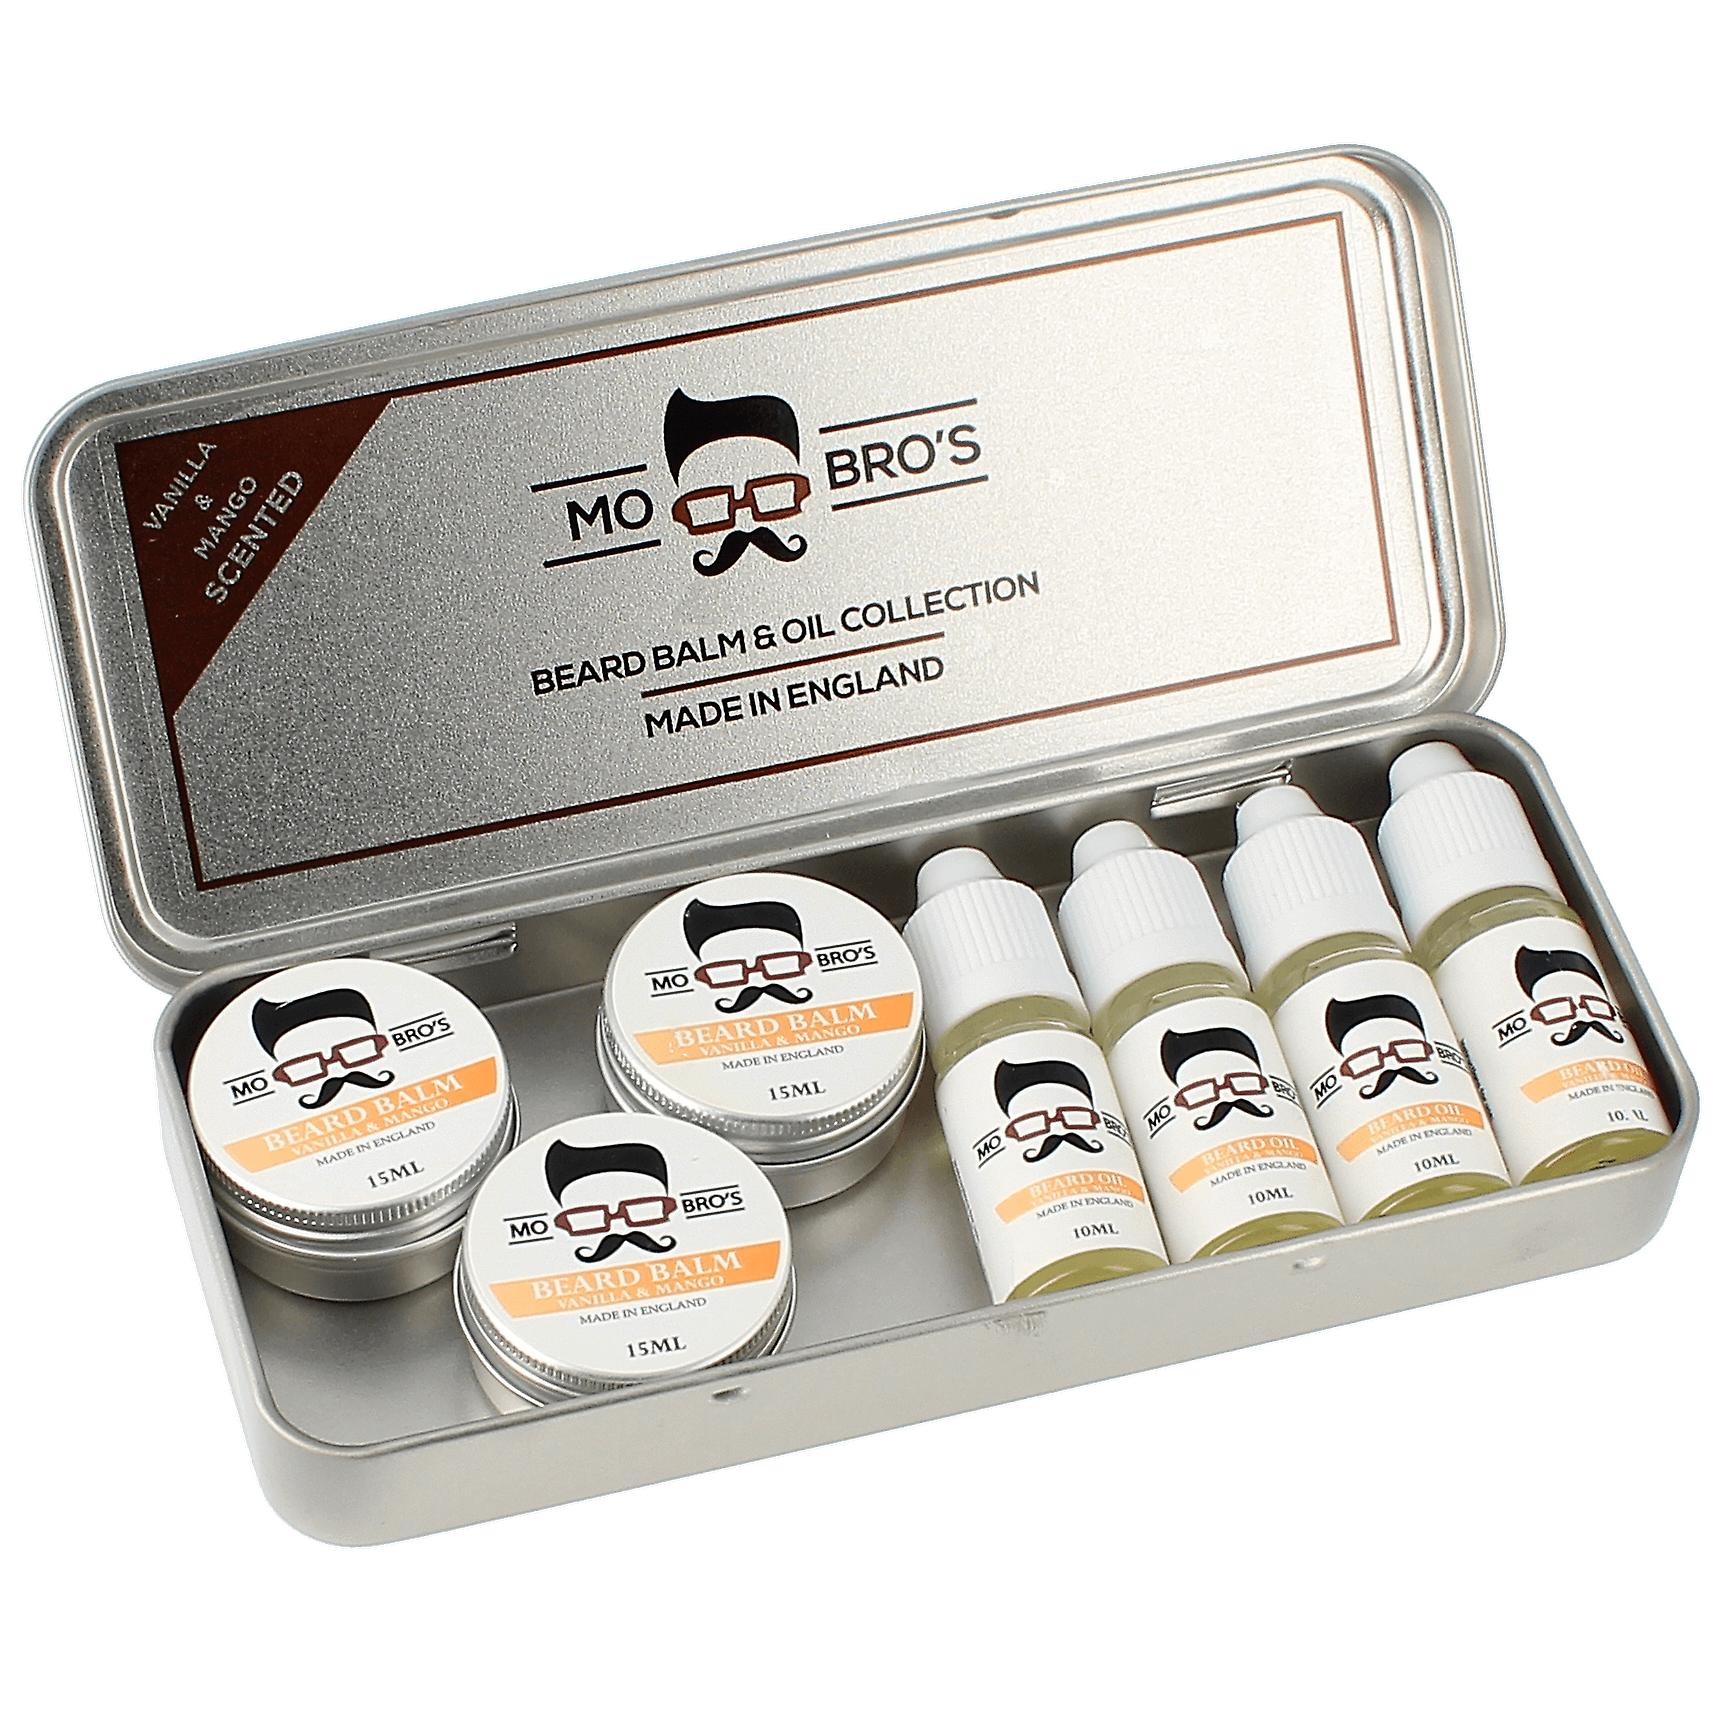 Beard balm & oil collection